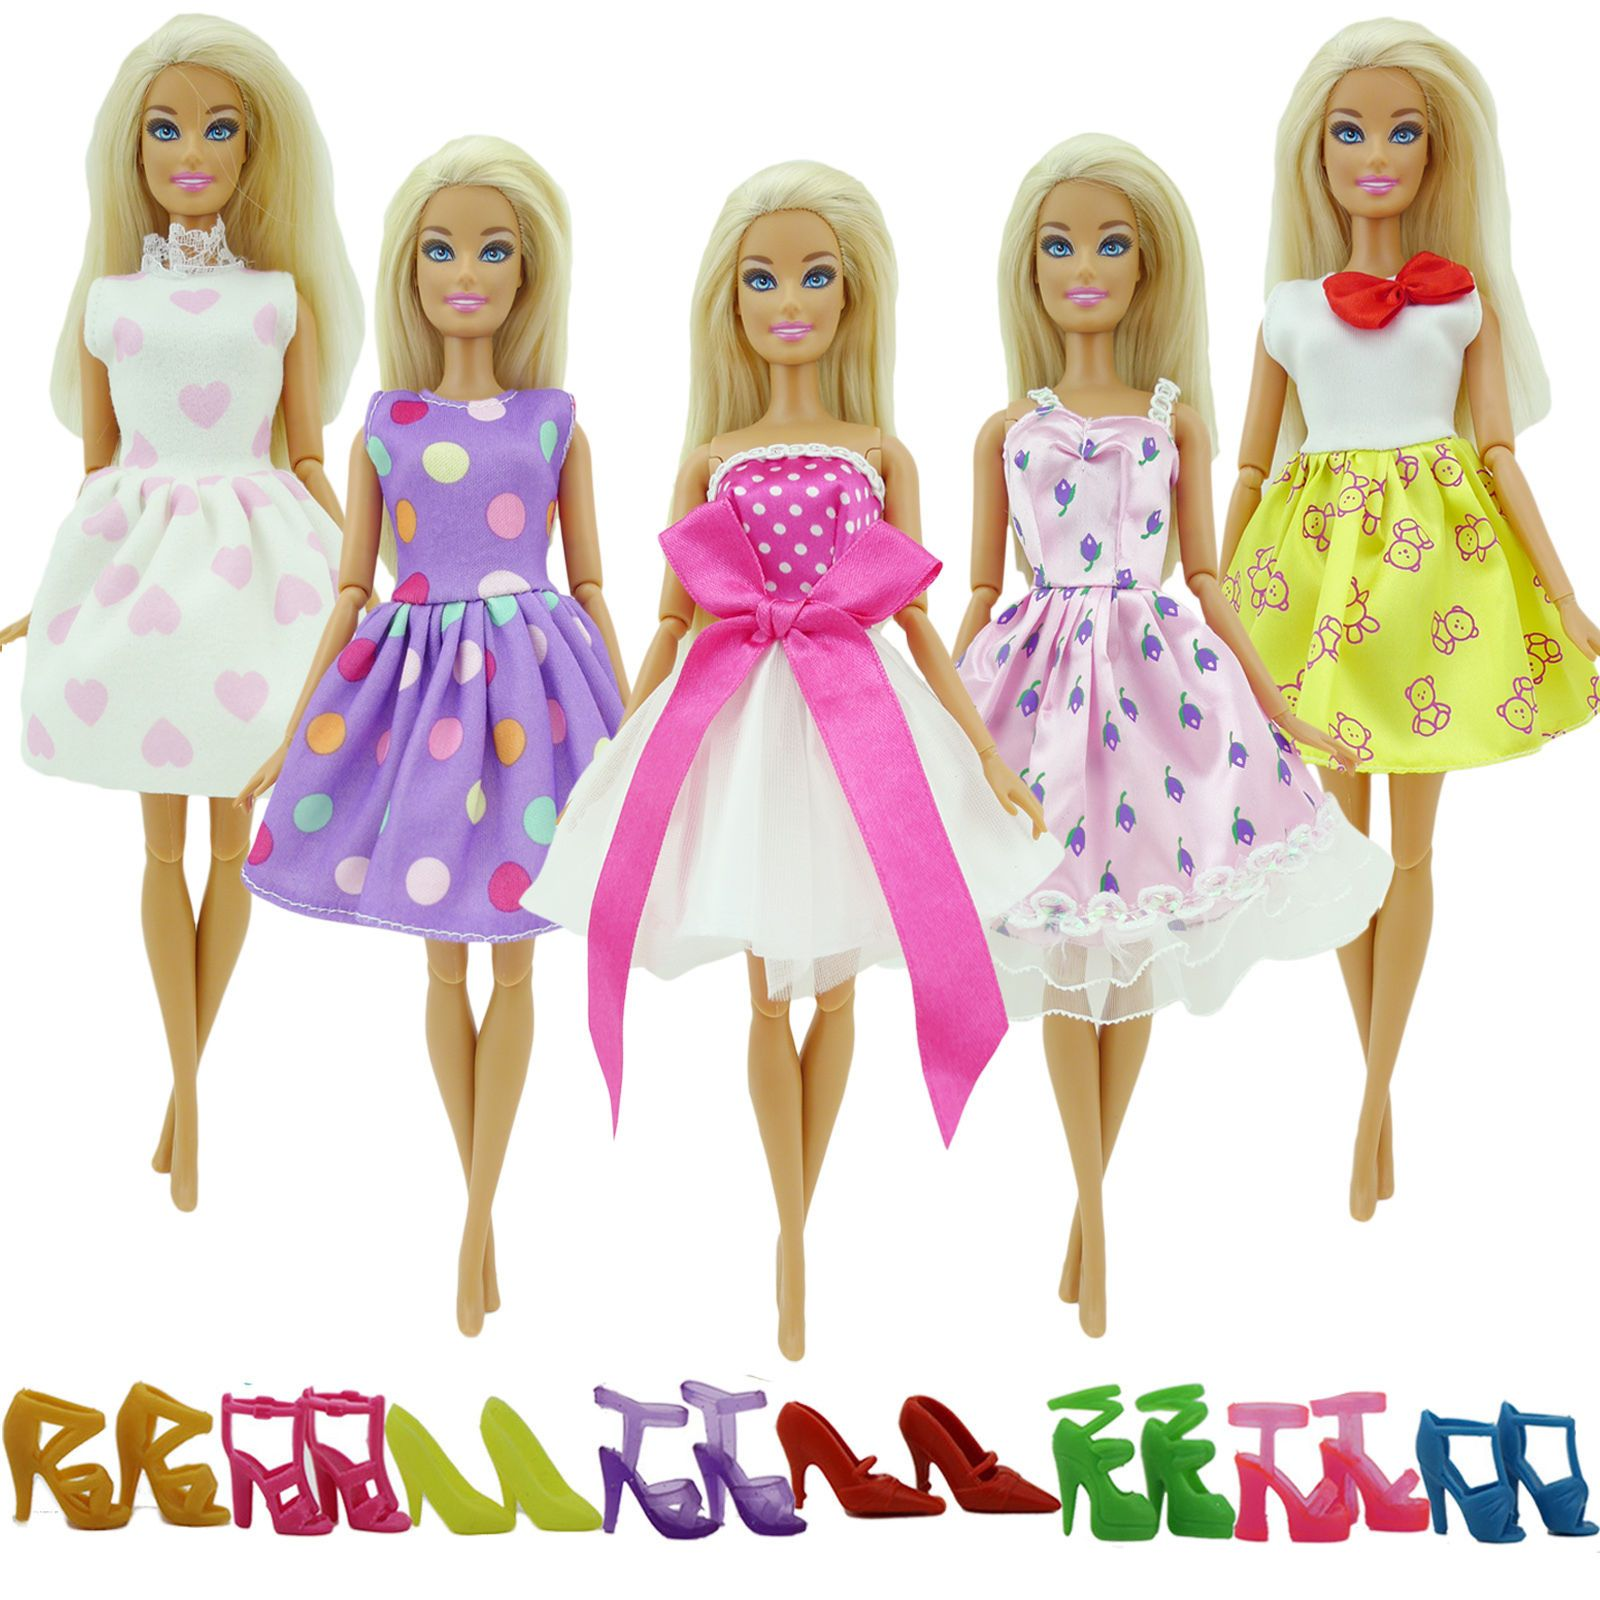 10 Pairs  Shoes Party Dress Doll Shoes  Dolls Accessories Gifts!